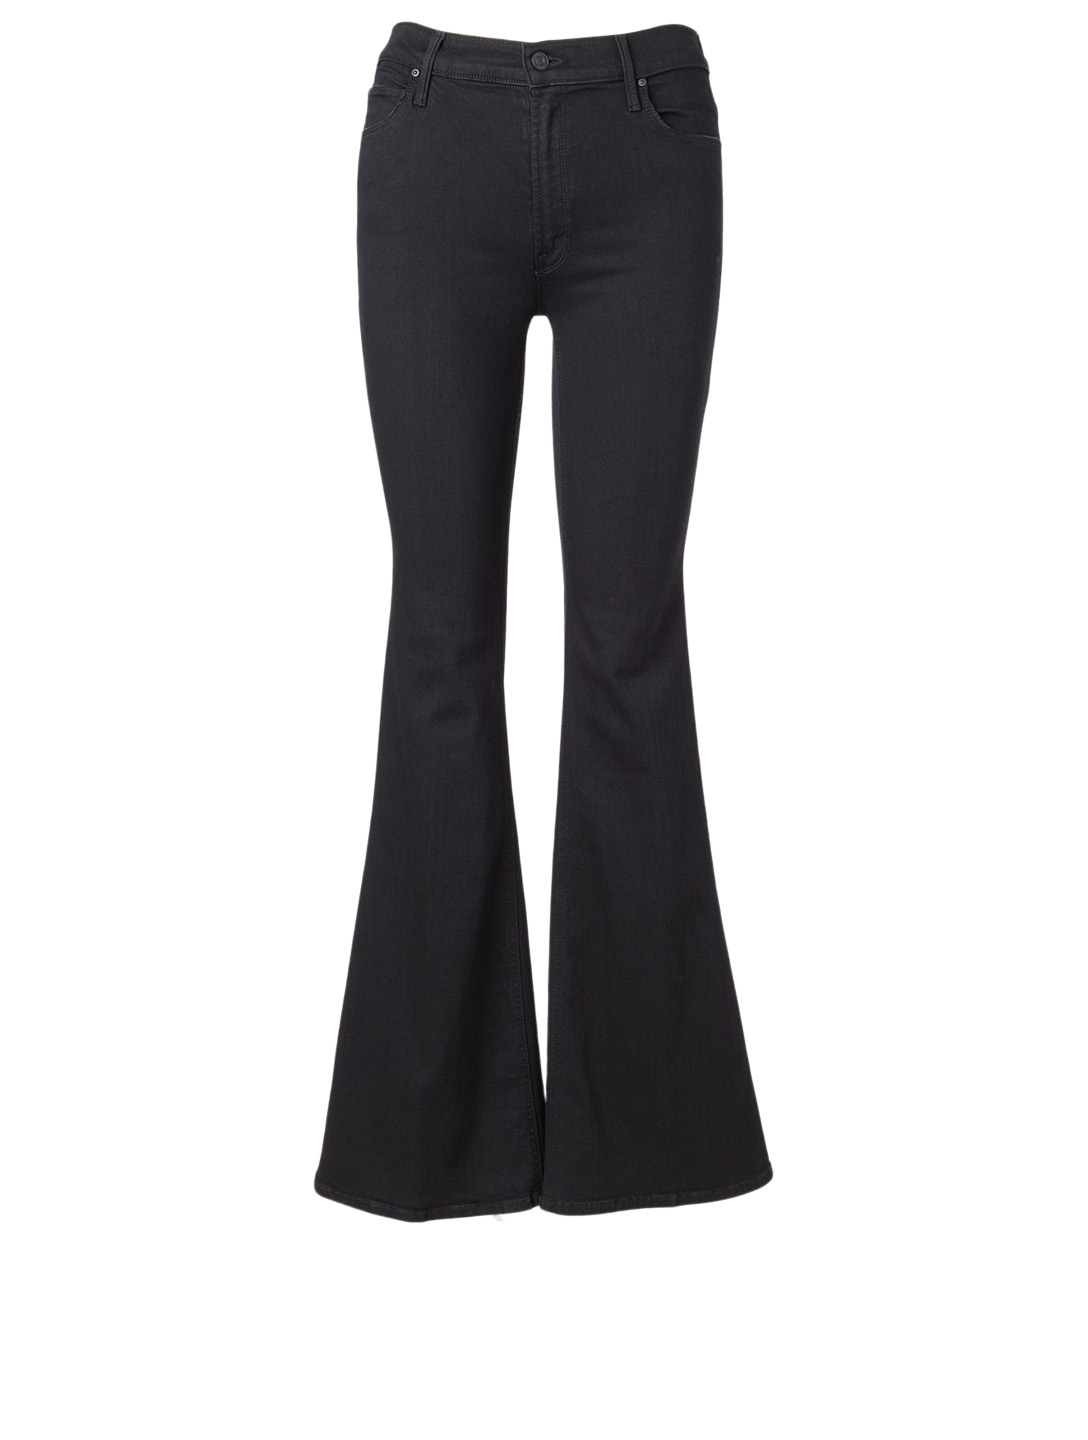 MOTHER Doozy Flared Jeans Women's Black